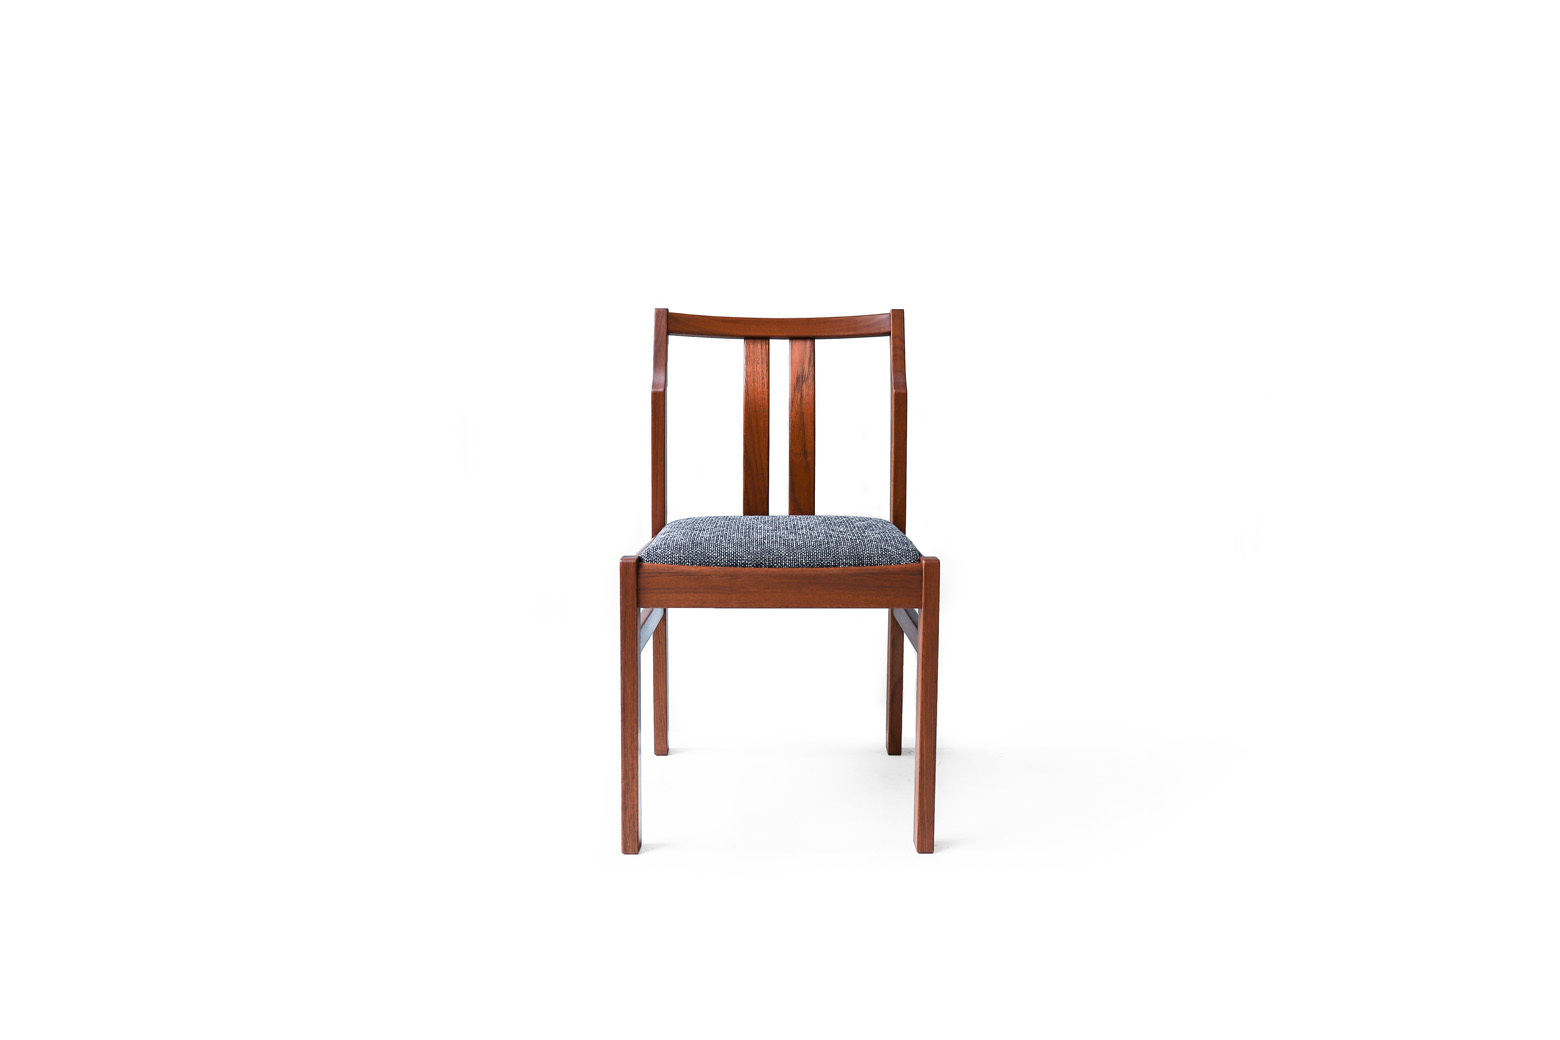 Japanese Vintage Teakwood Dining Chair/ジャパンヴィンテージ ダイニングチェア チーク材 北欧スタイル 椅子